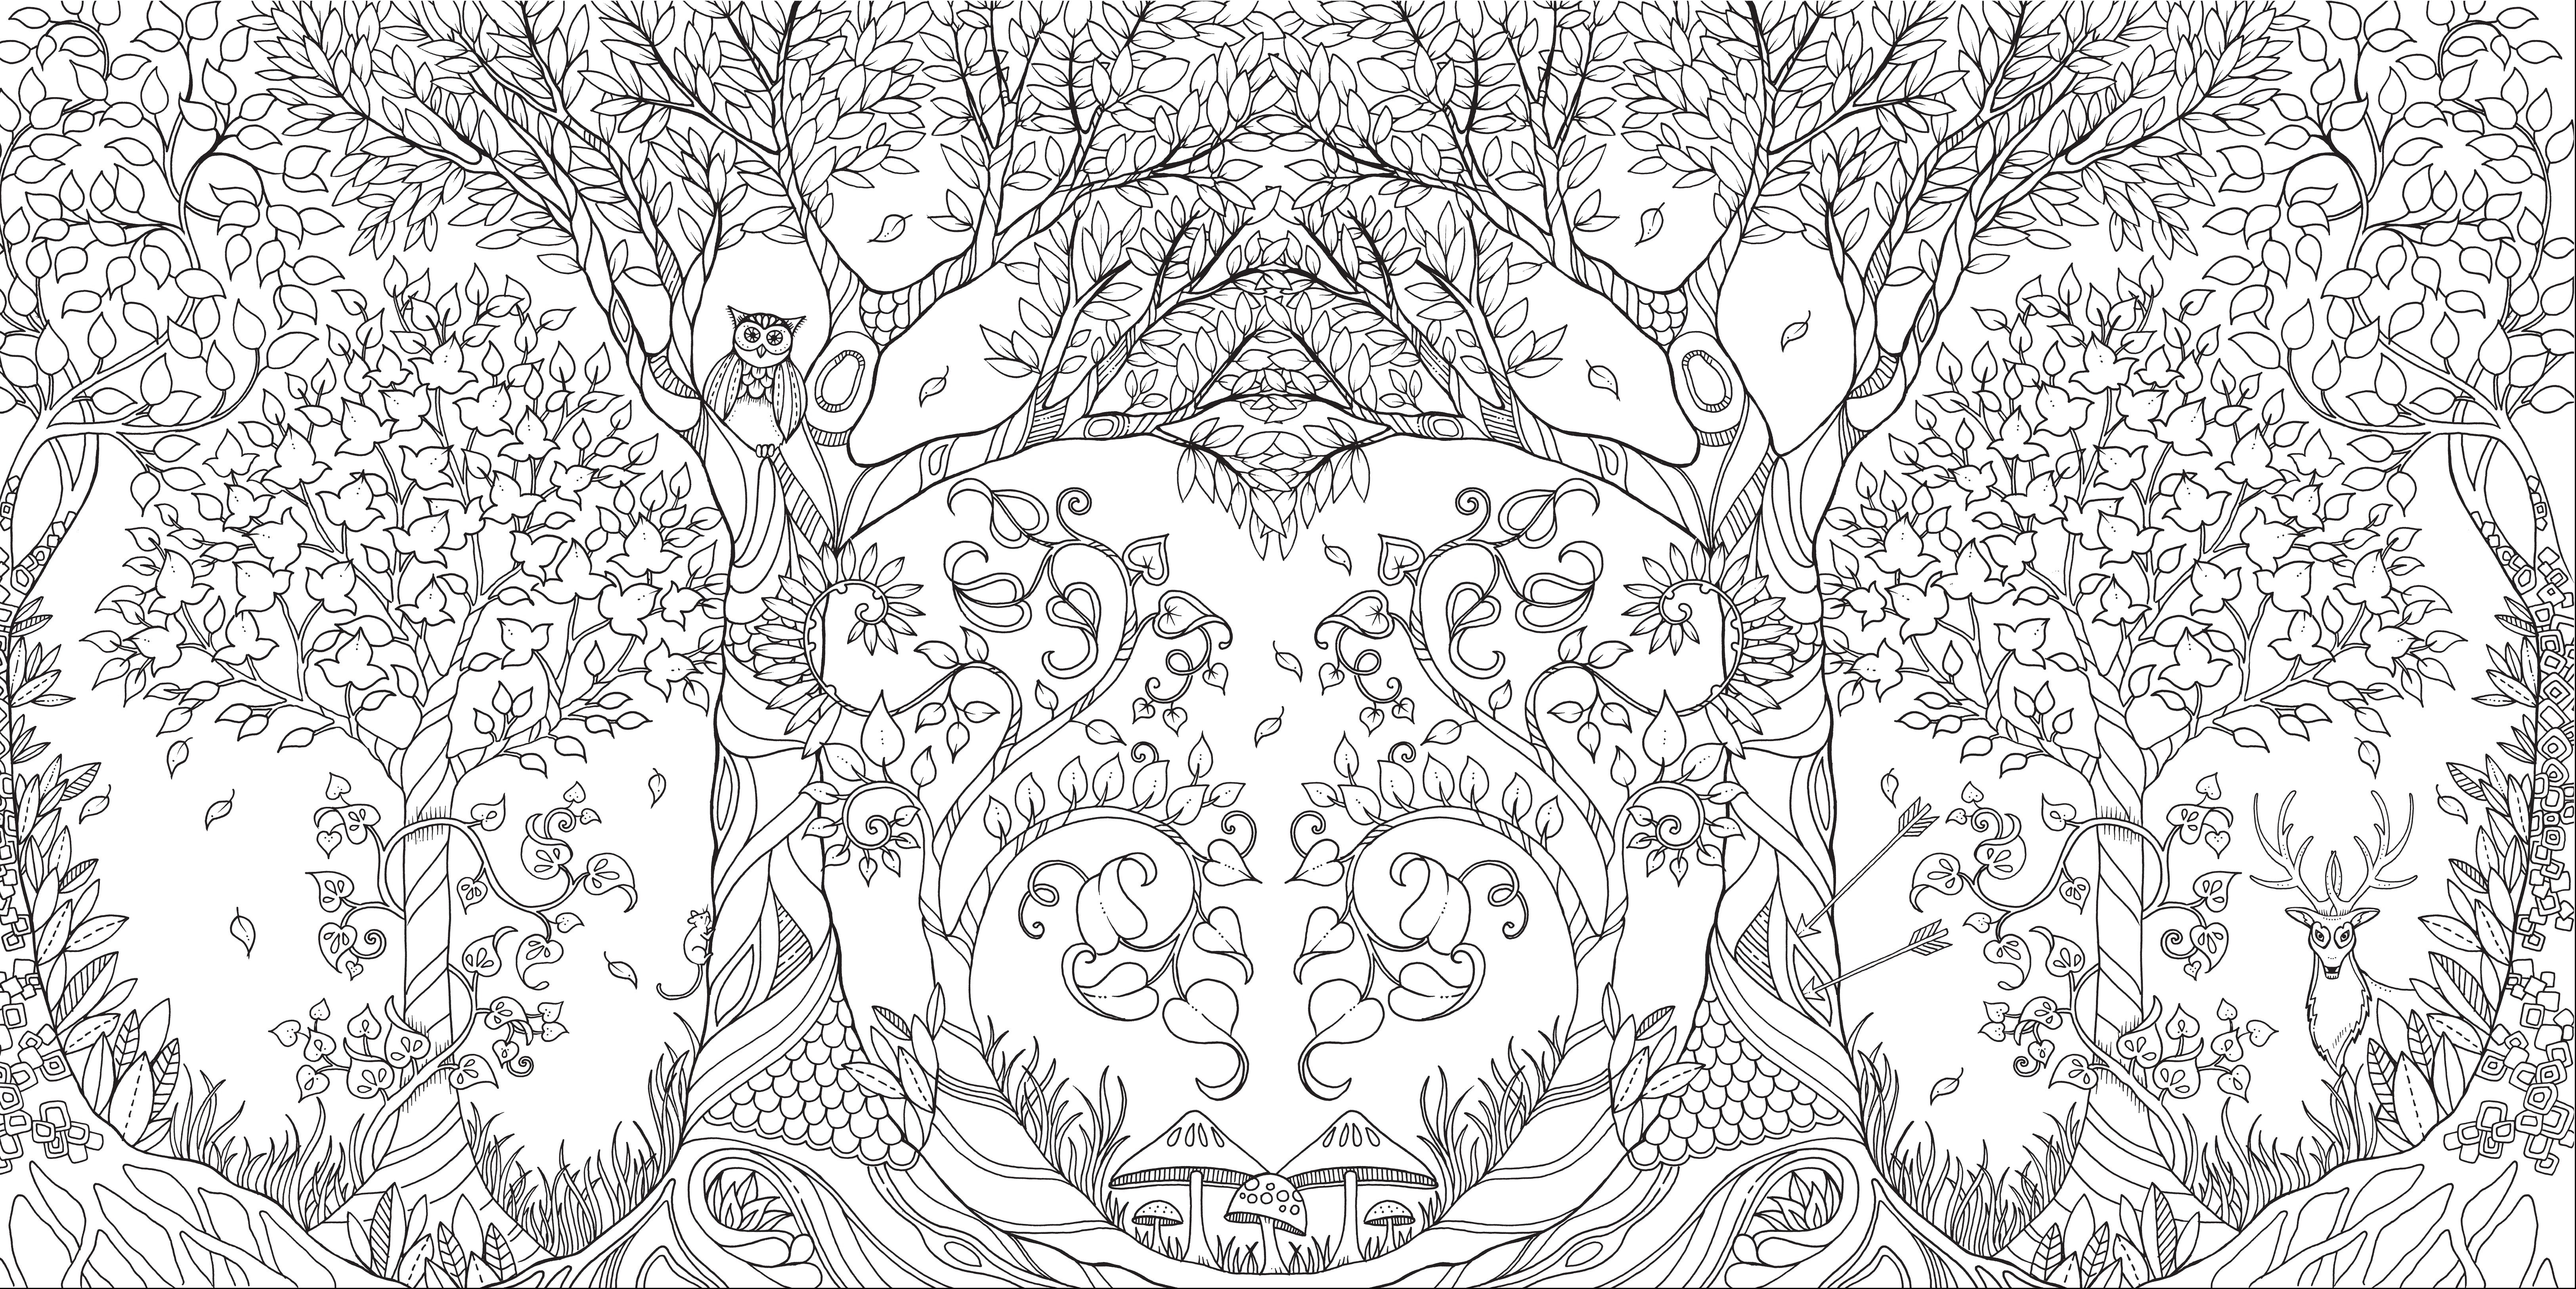 Whimsical coloring books for grownups are a hit